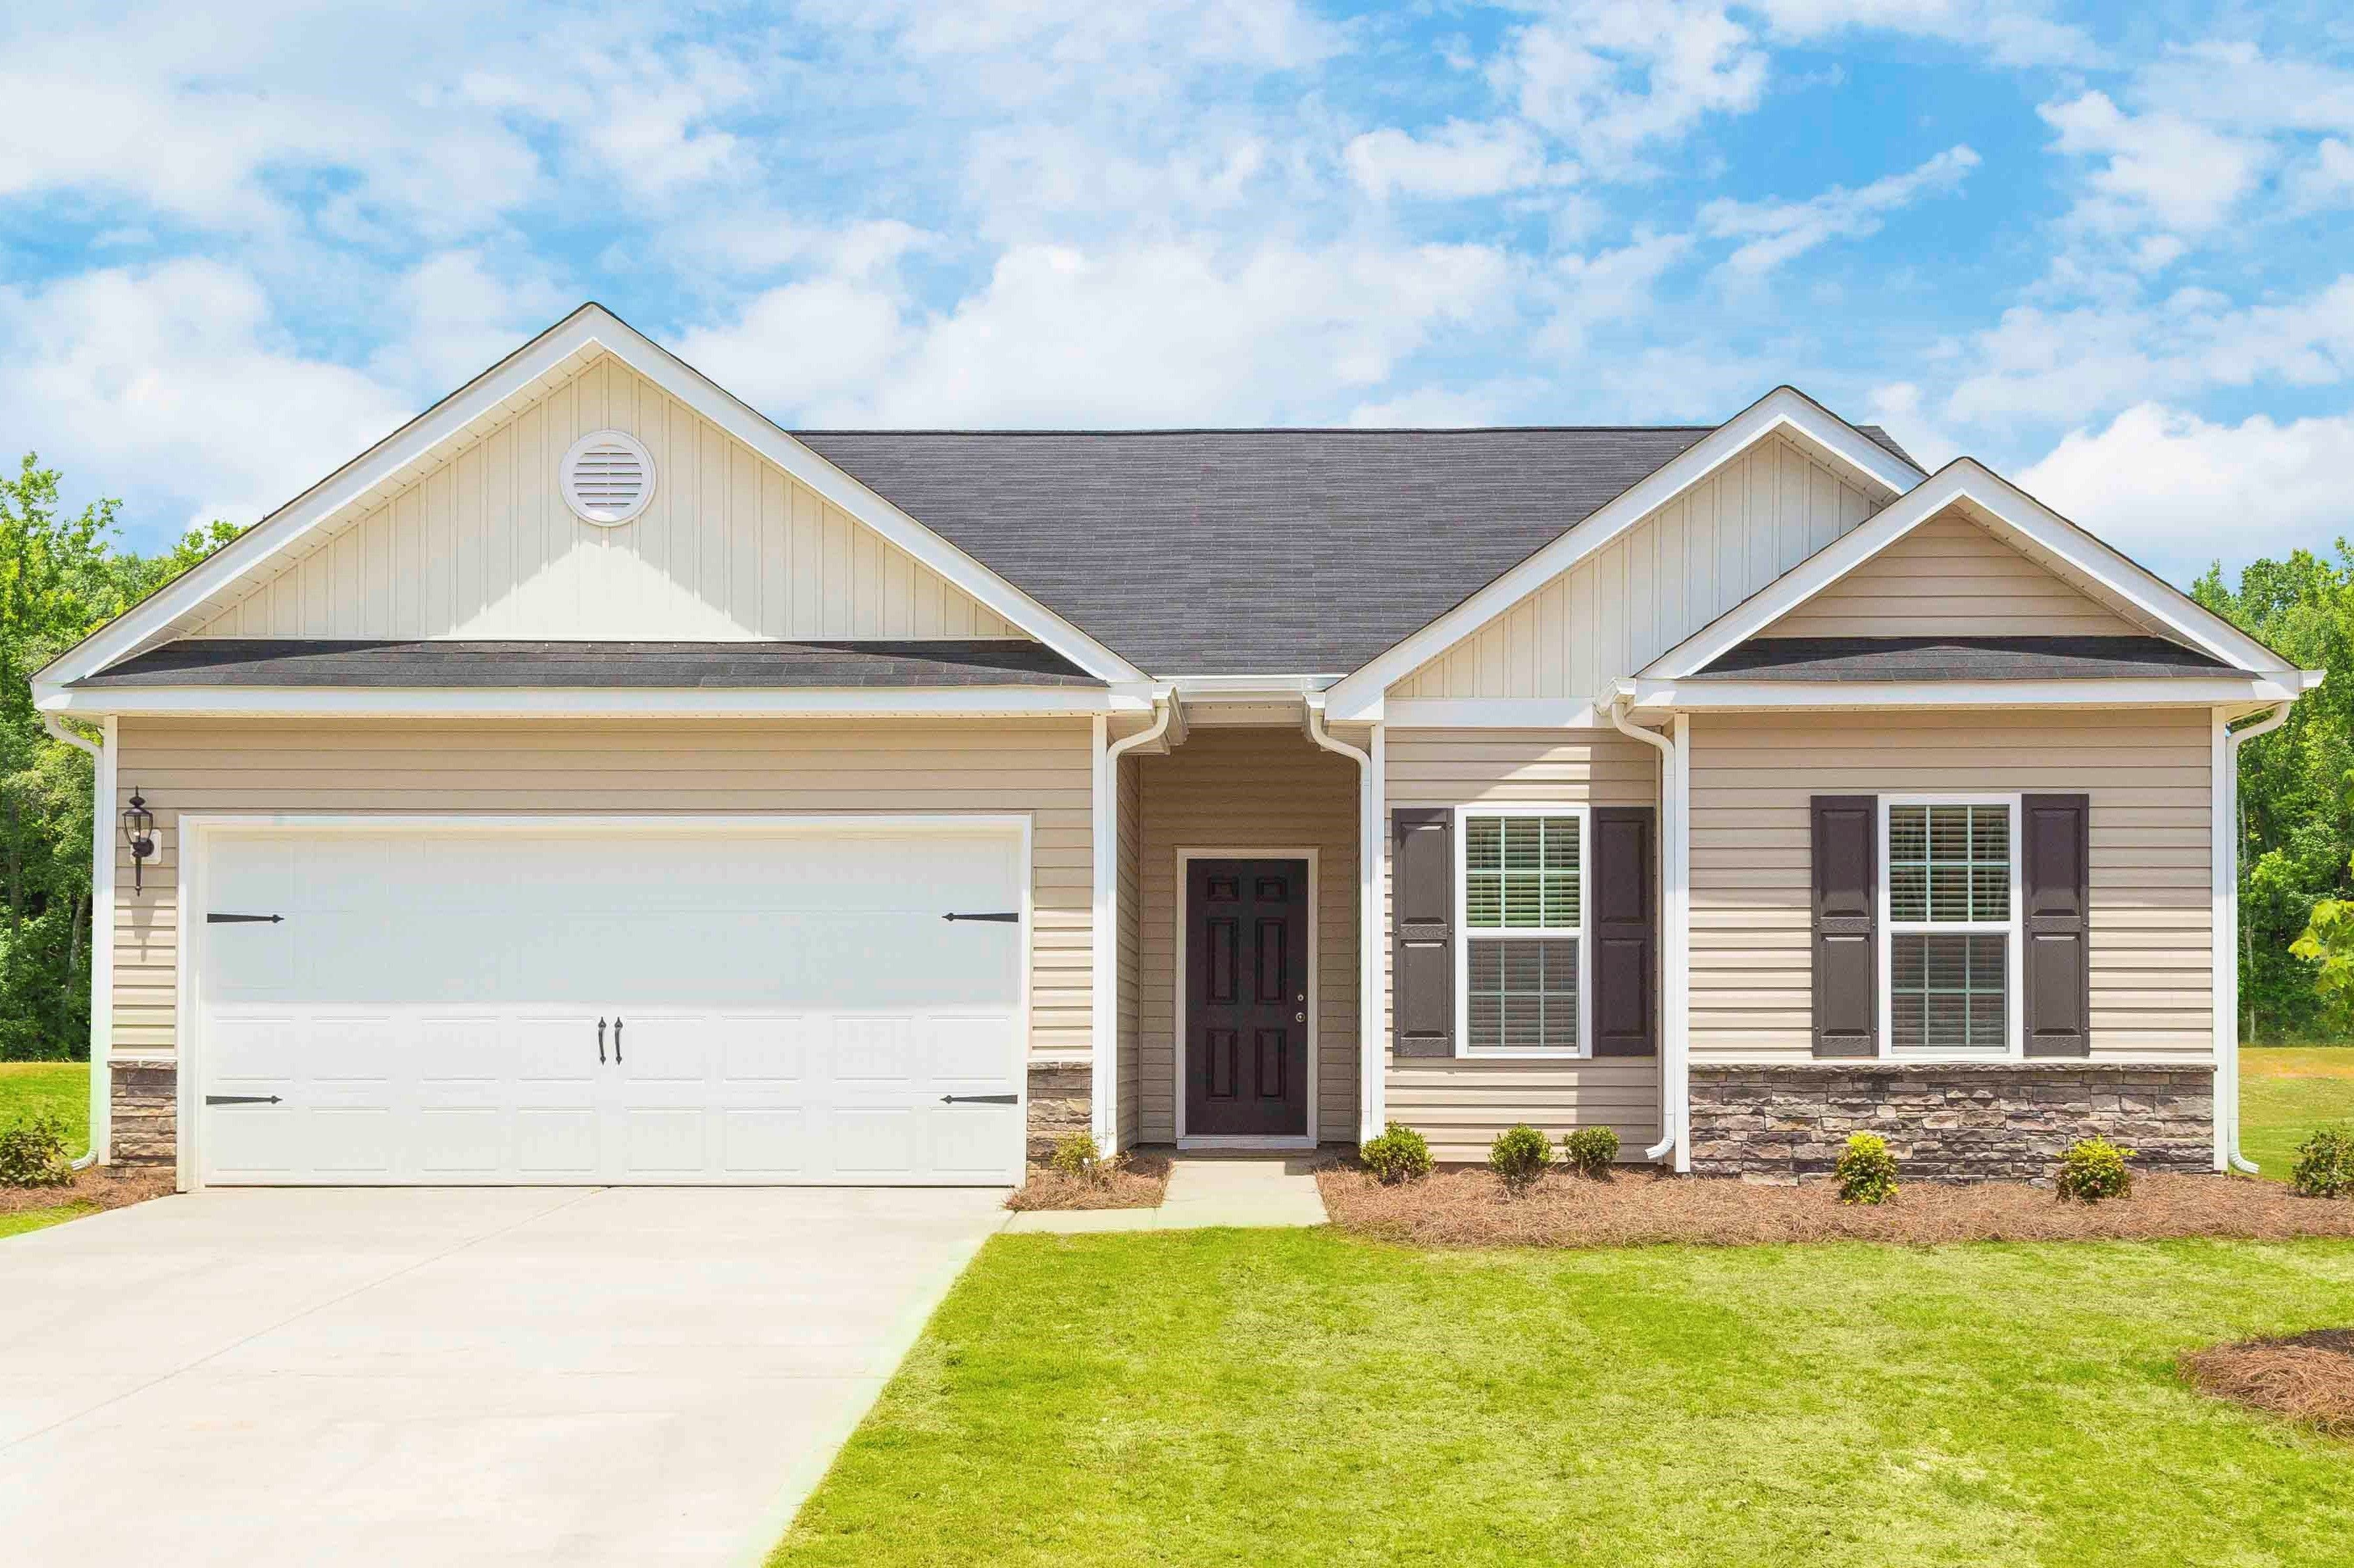 Hot deals lower prices new homes in charlotte nc for New home source dfw